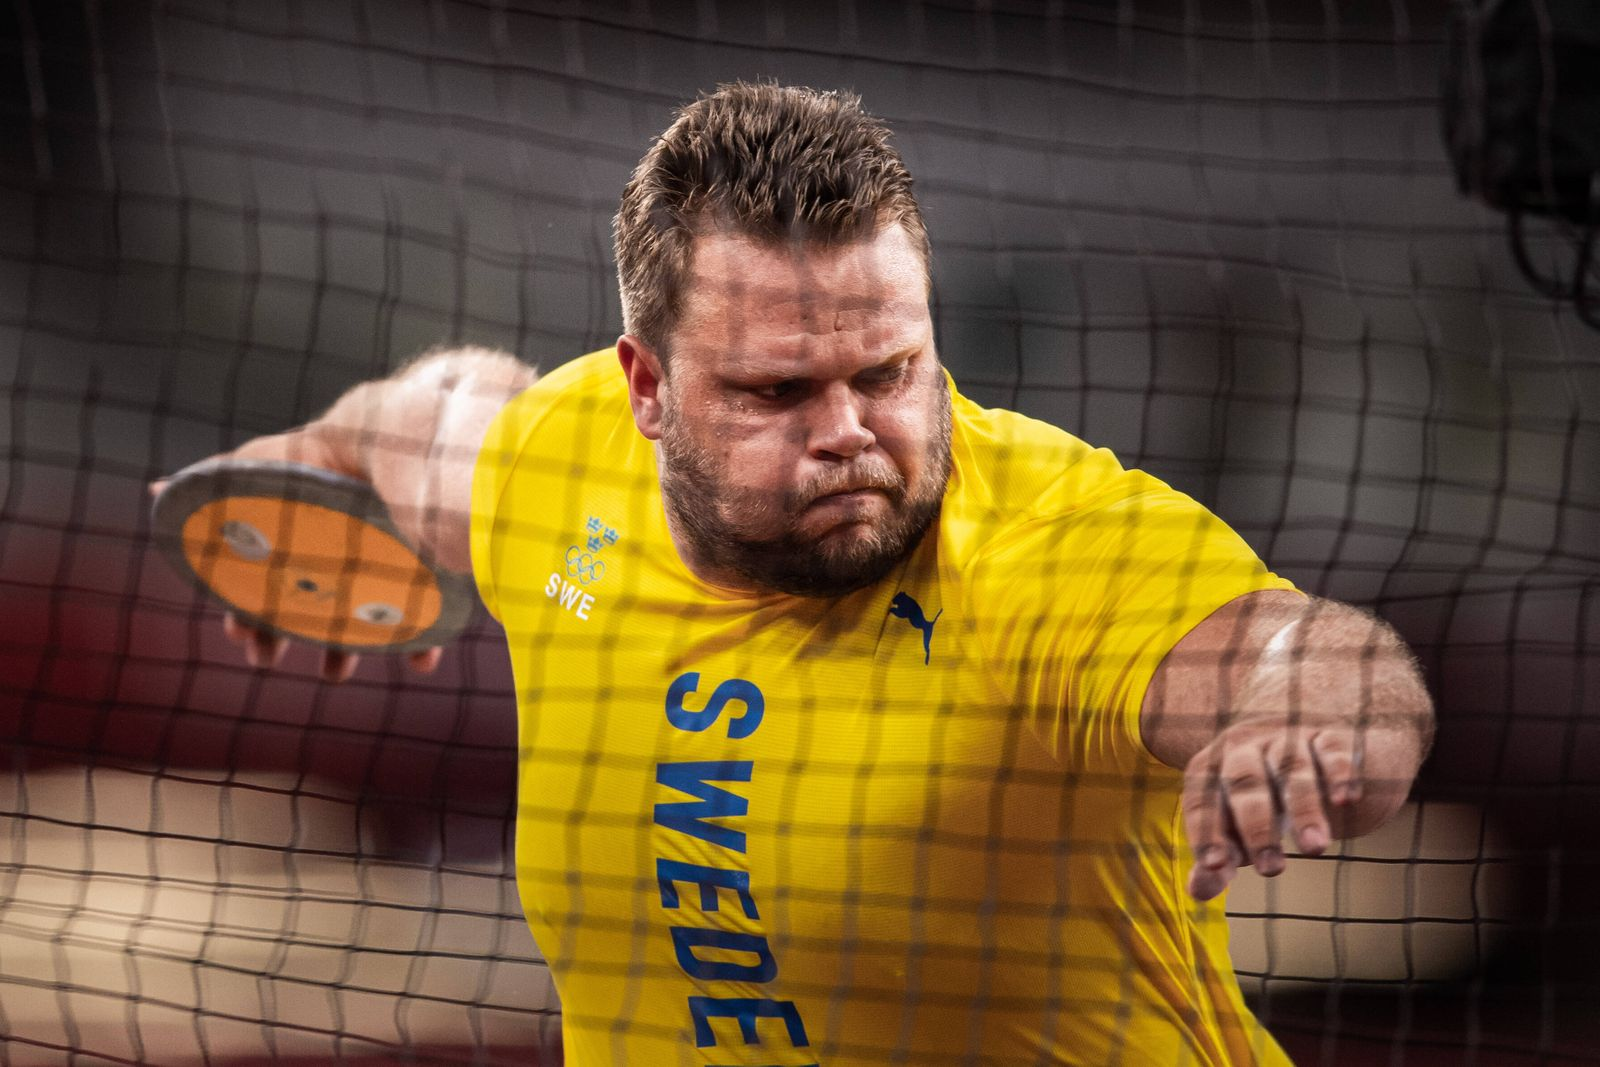 """210731 Daniel Stahl of Sweden competes in men""""!s discus throw final during day 8 of the Tokyo 2020 Olympic Games, Olympi"""